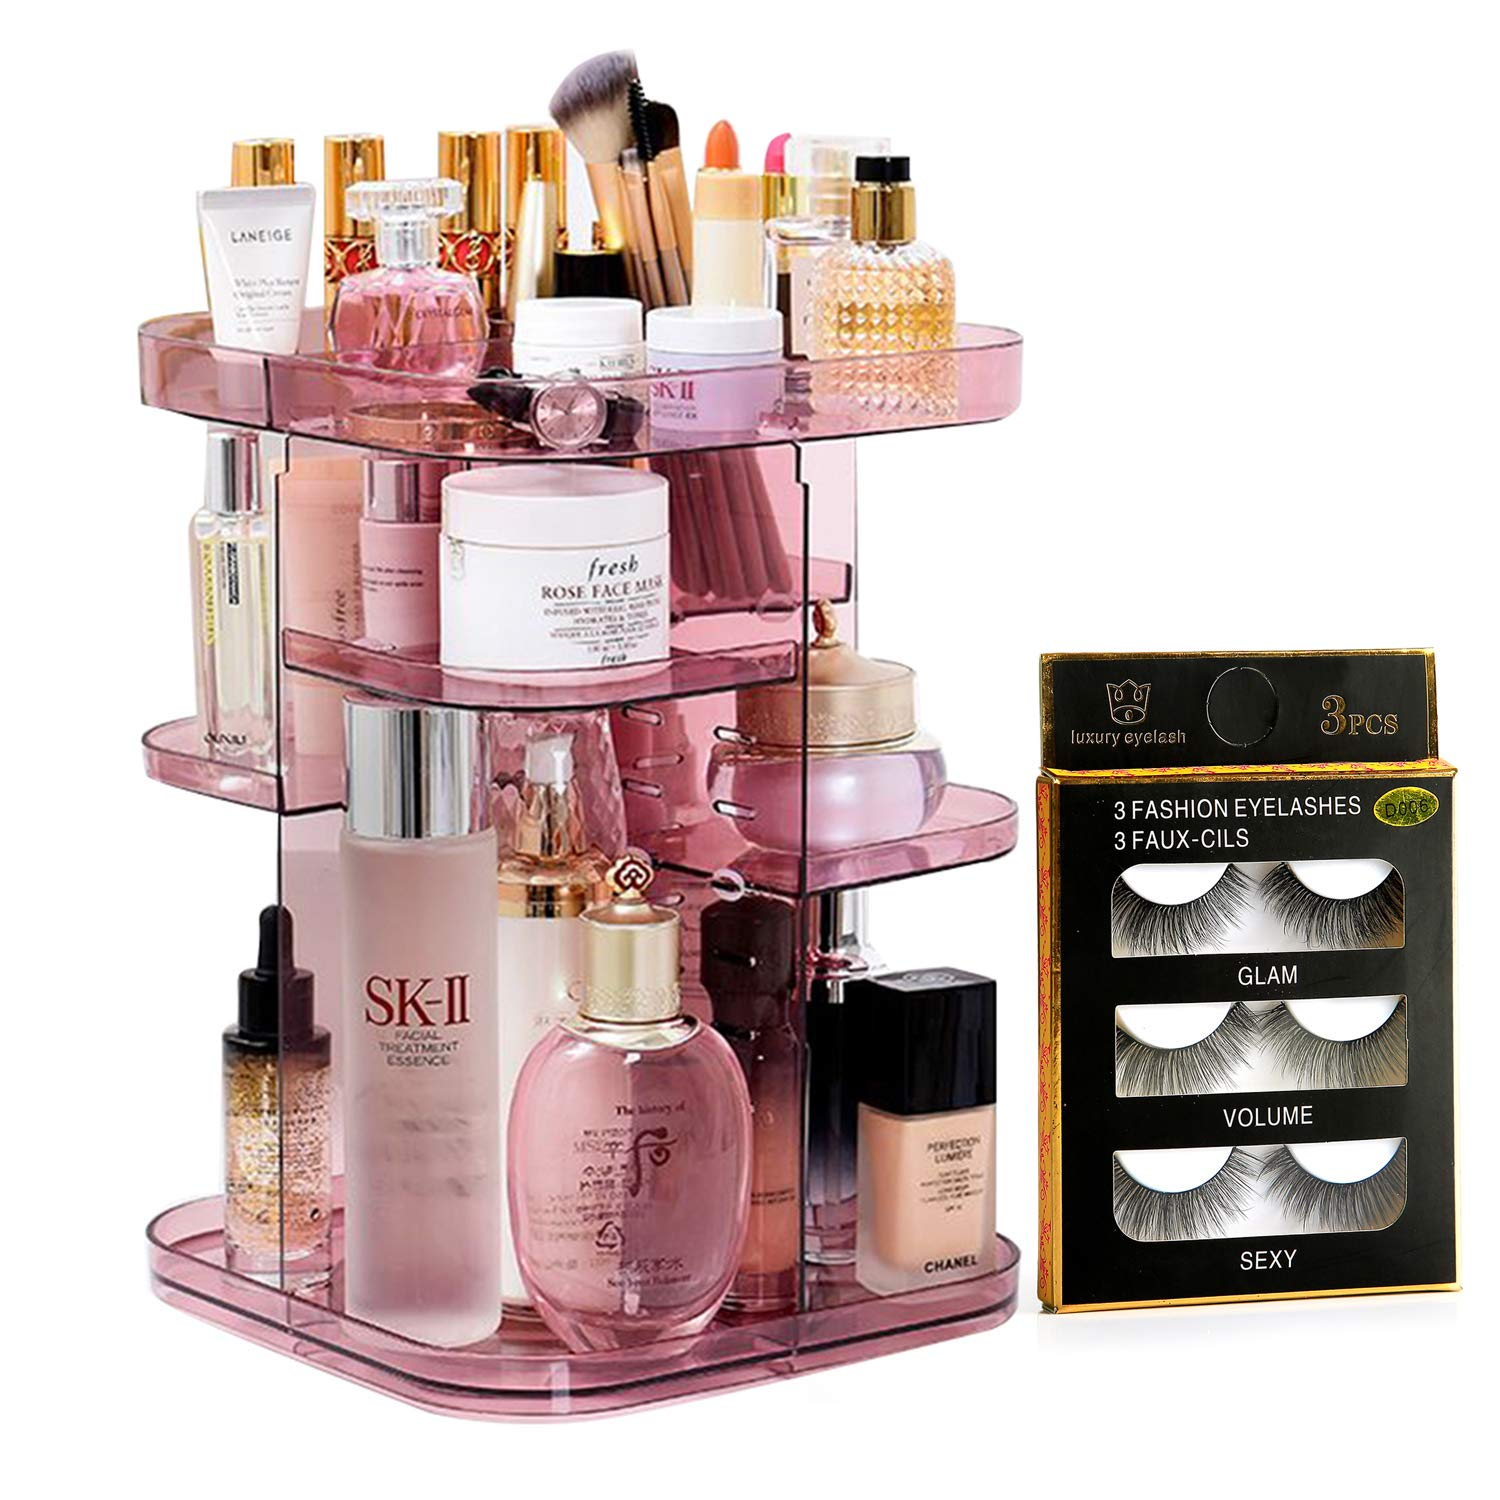 Upgraded Makeup Organizer 360 Smooth Spinning Sturdy Acrylic NOT PLASTIC Cosmetic Storage Display Case for Brushes Lipsticks Rings-Free Returnless Replace Warranty